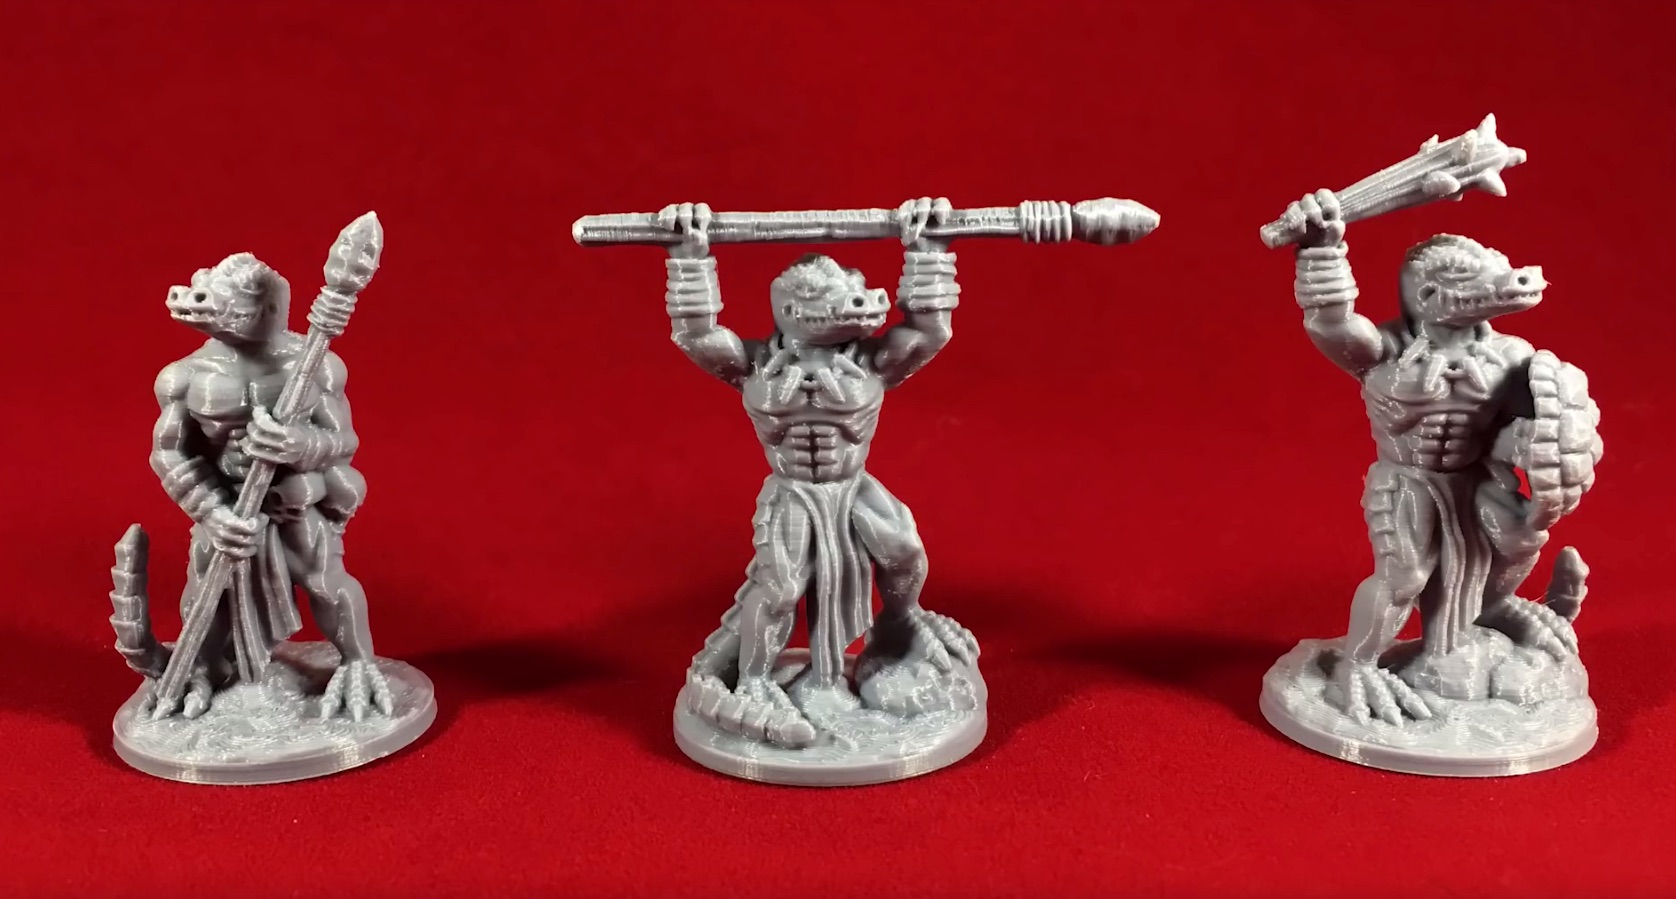 How to Print Miniature Figures on a 3D Printer